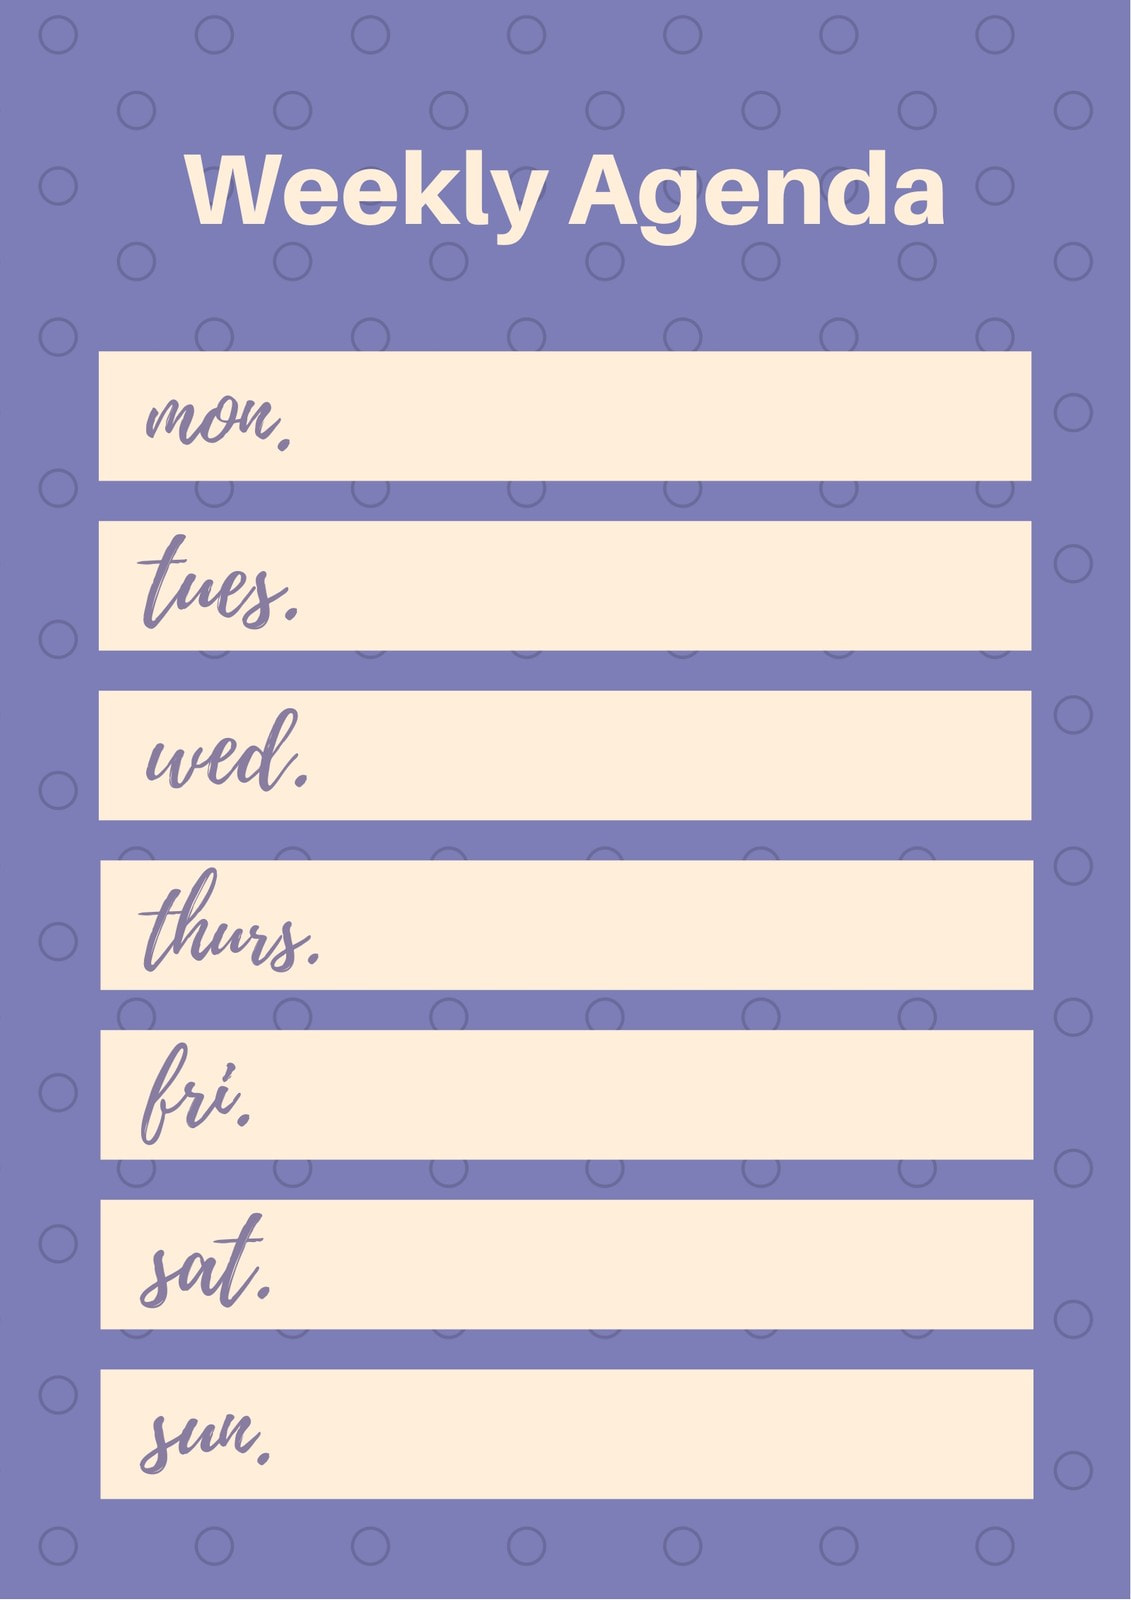 Pink and Violet Polka Dotted General Weekly Schedule